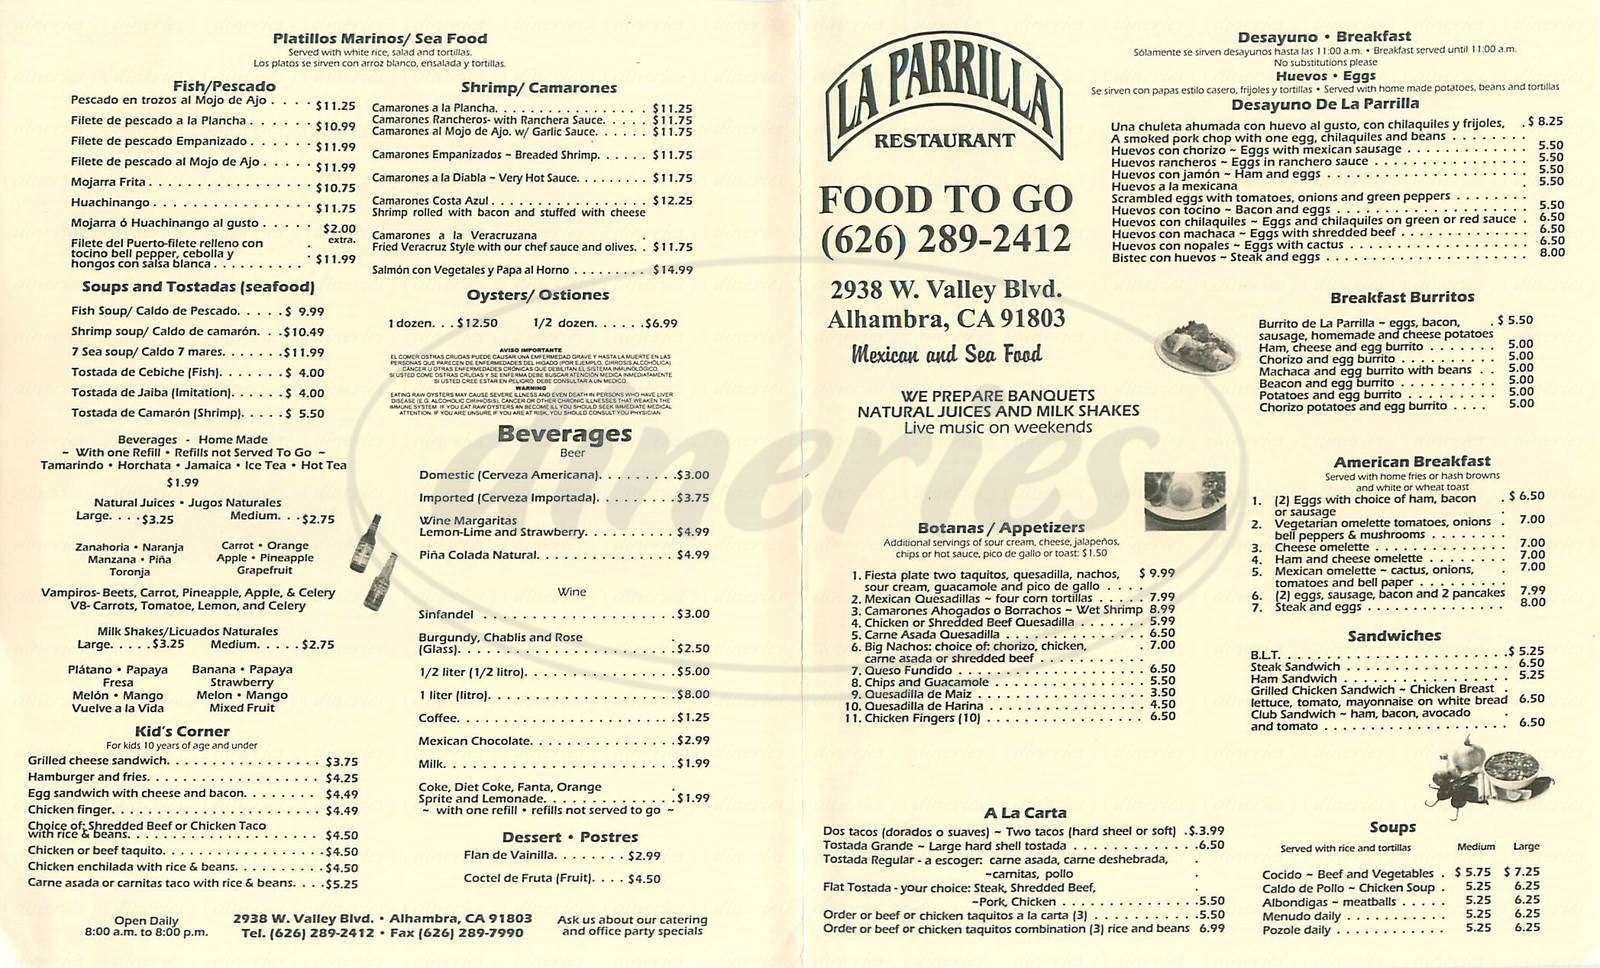 menu for La Parrilla